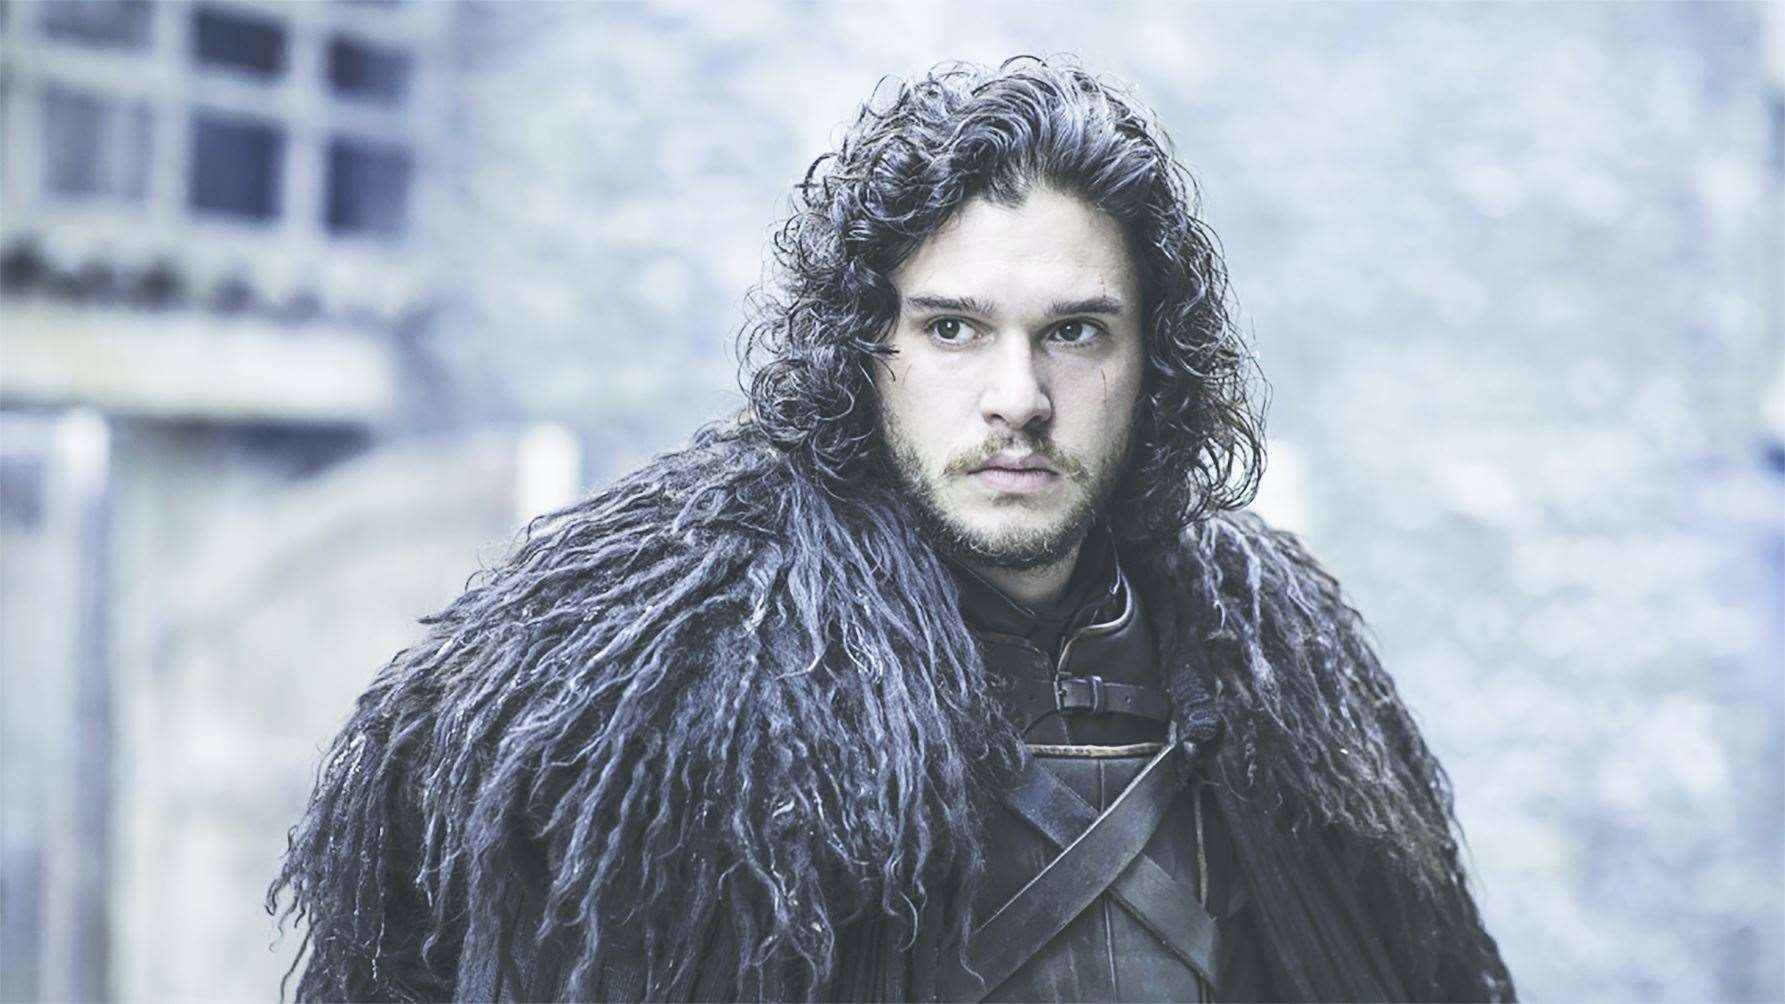 Kit Harington, who played Jon Snow in Game of Thrones, has won planning permission for changes at his Suffolk home